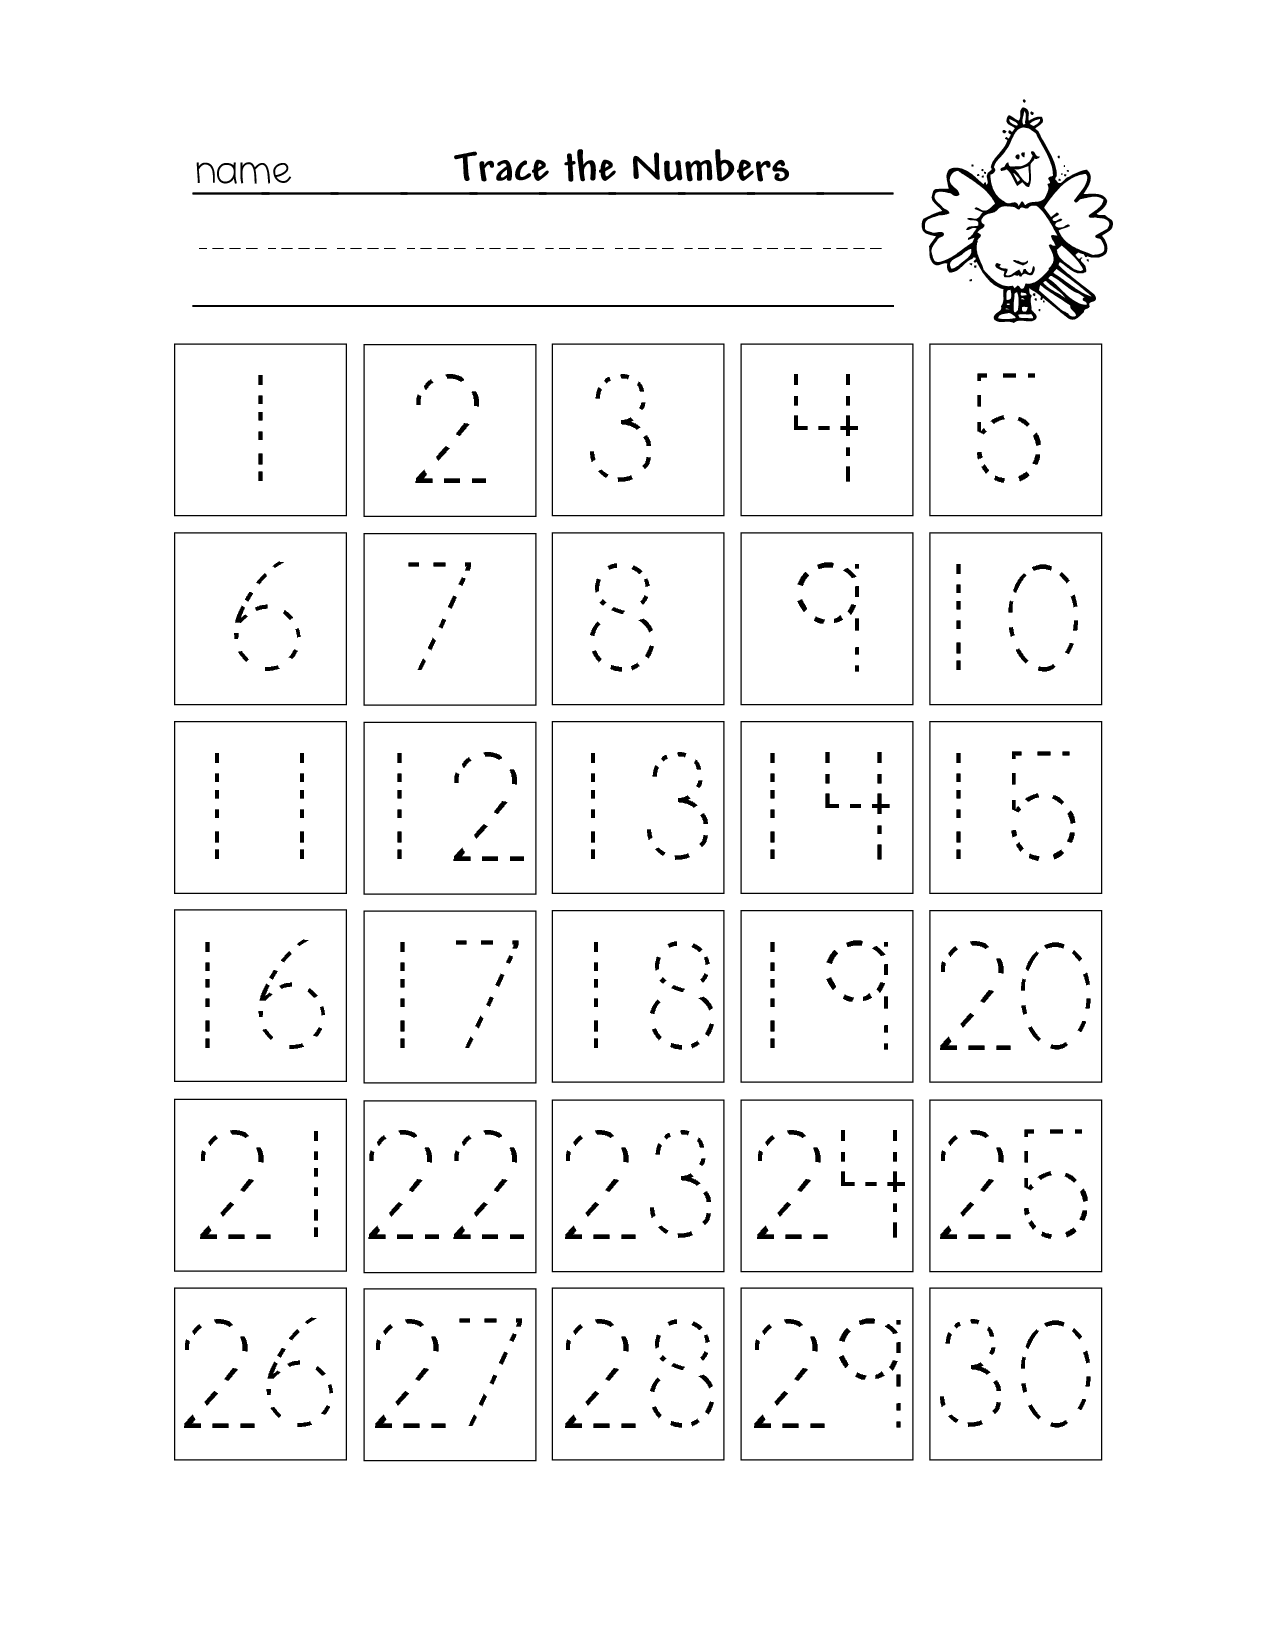 15 Best Images Of Worksheets Tracing Numbers 1 30